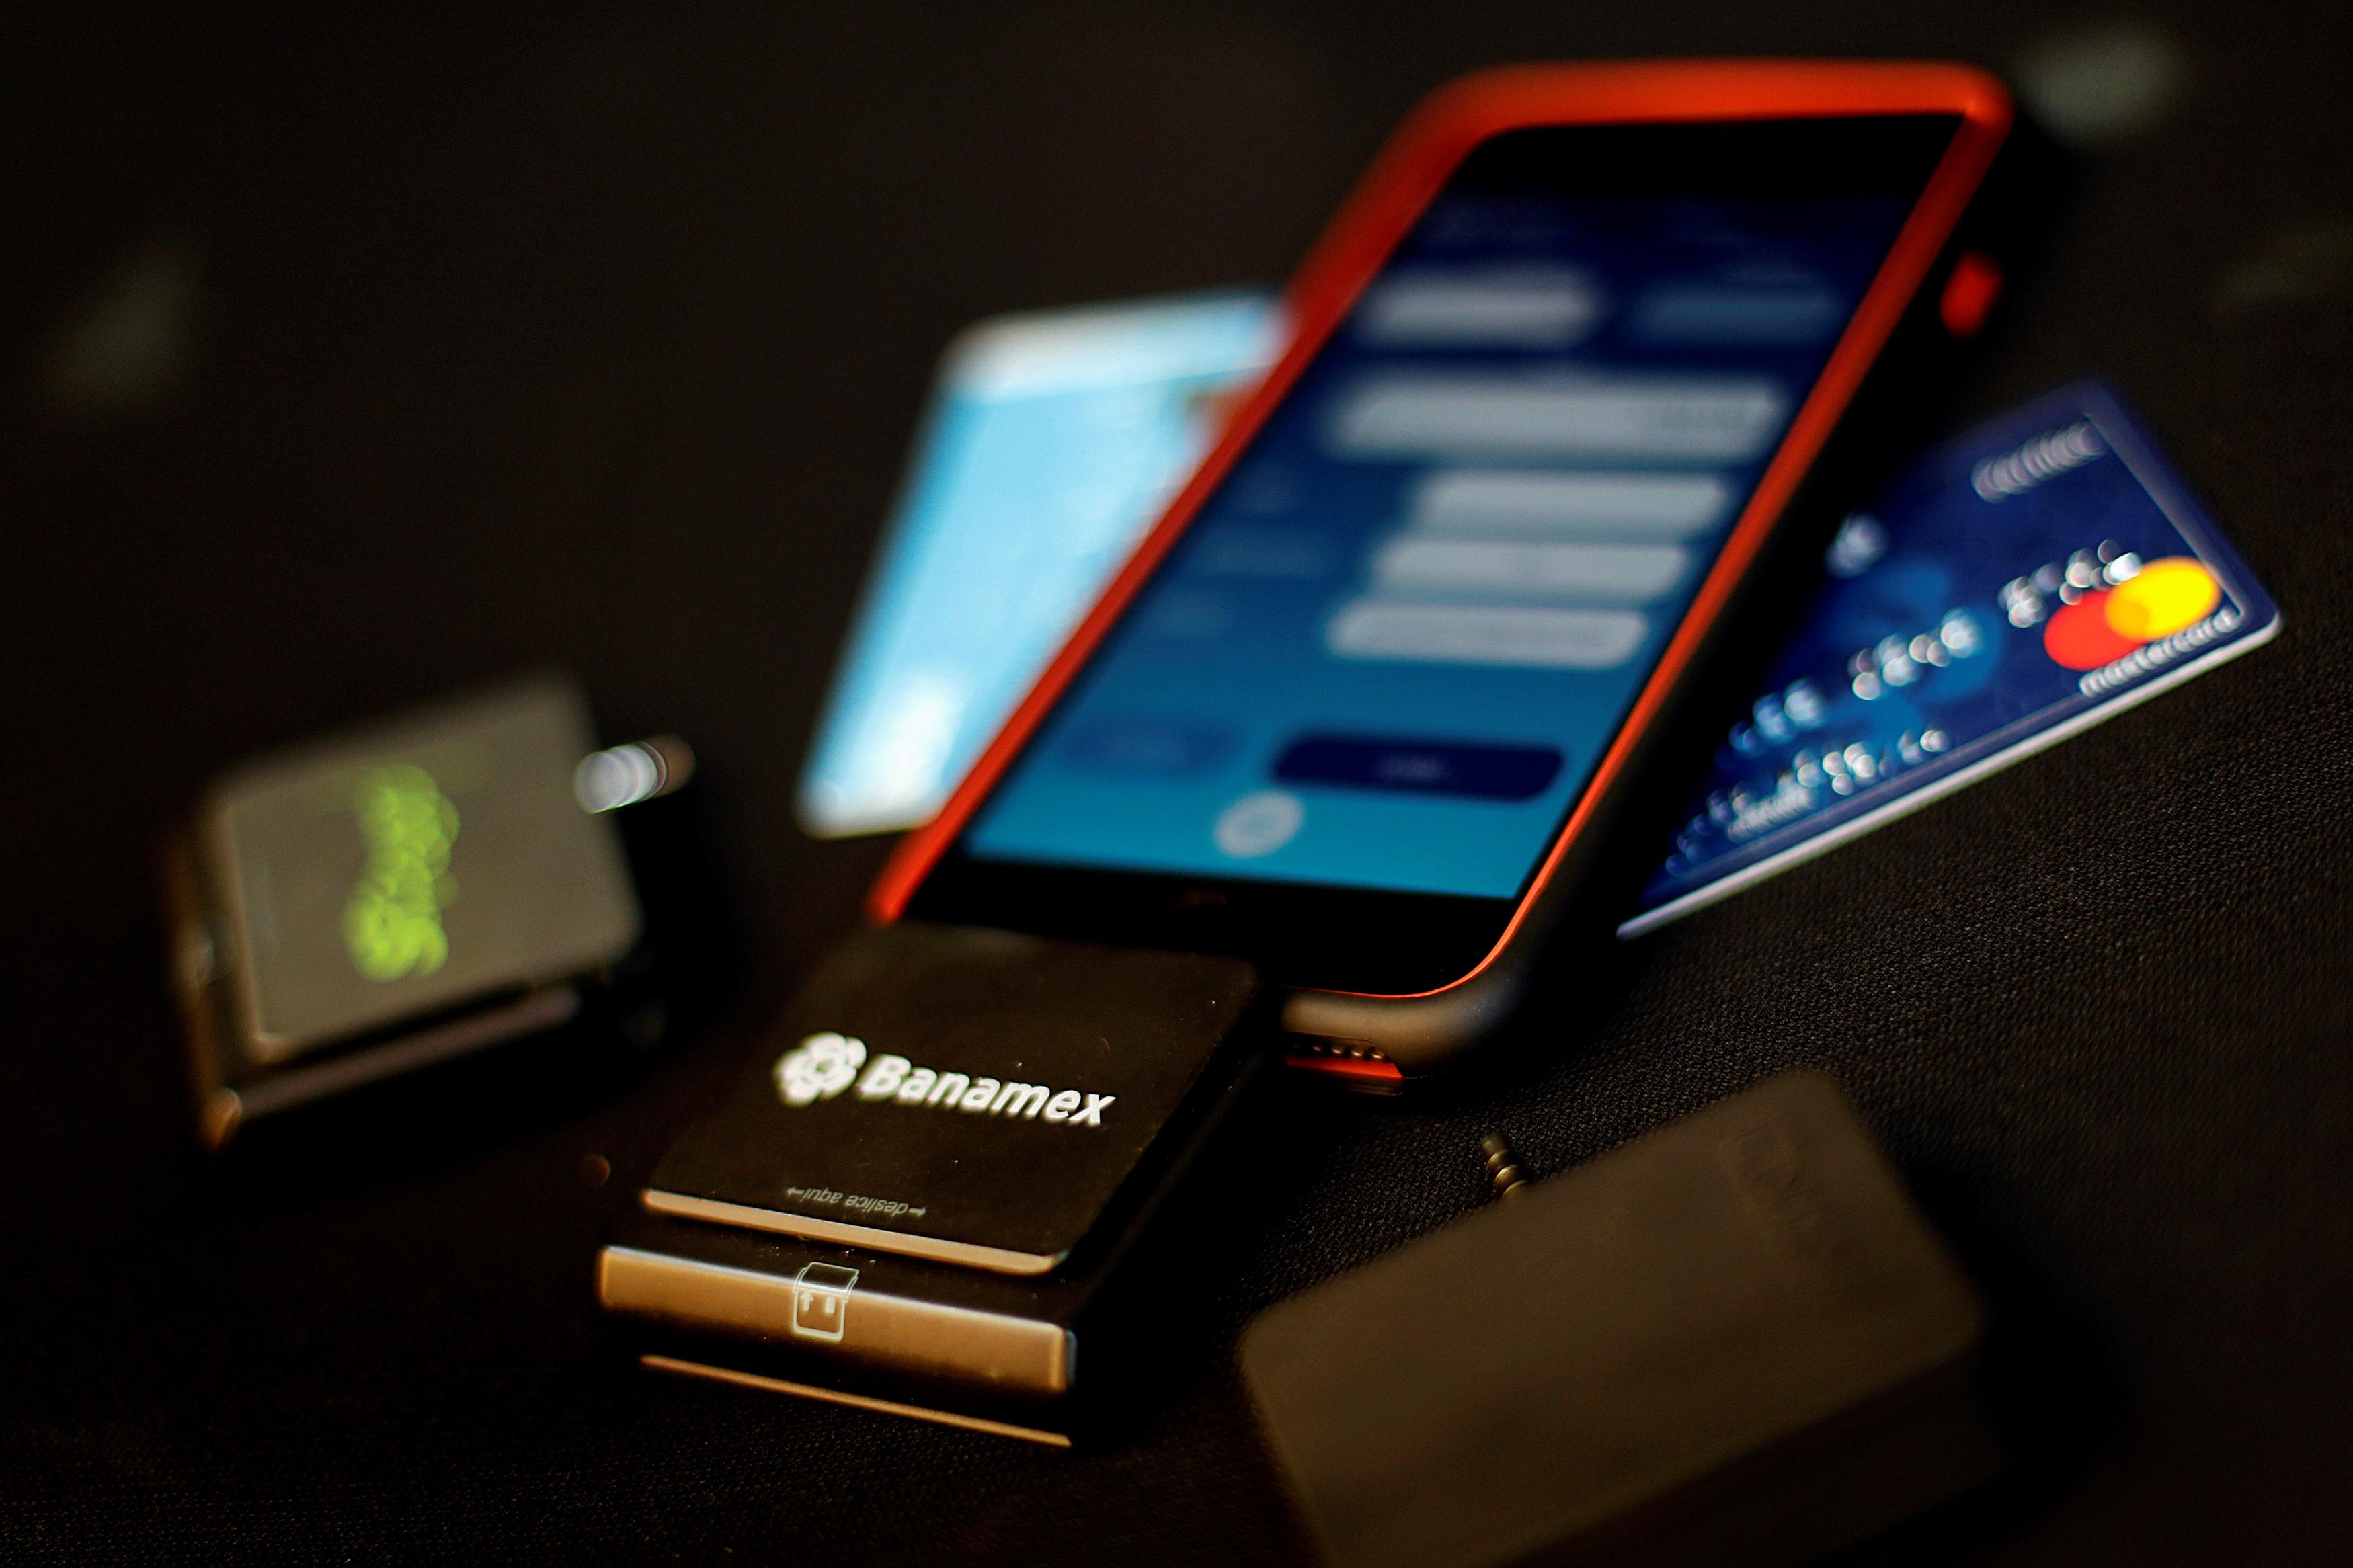 Start-ups to grab $280 billion in banking payments revenues by...